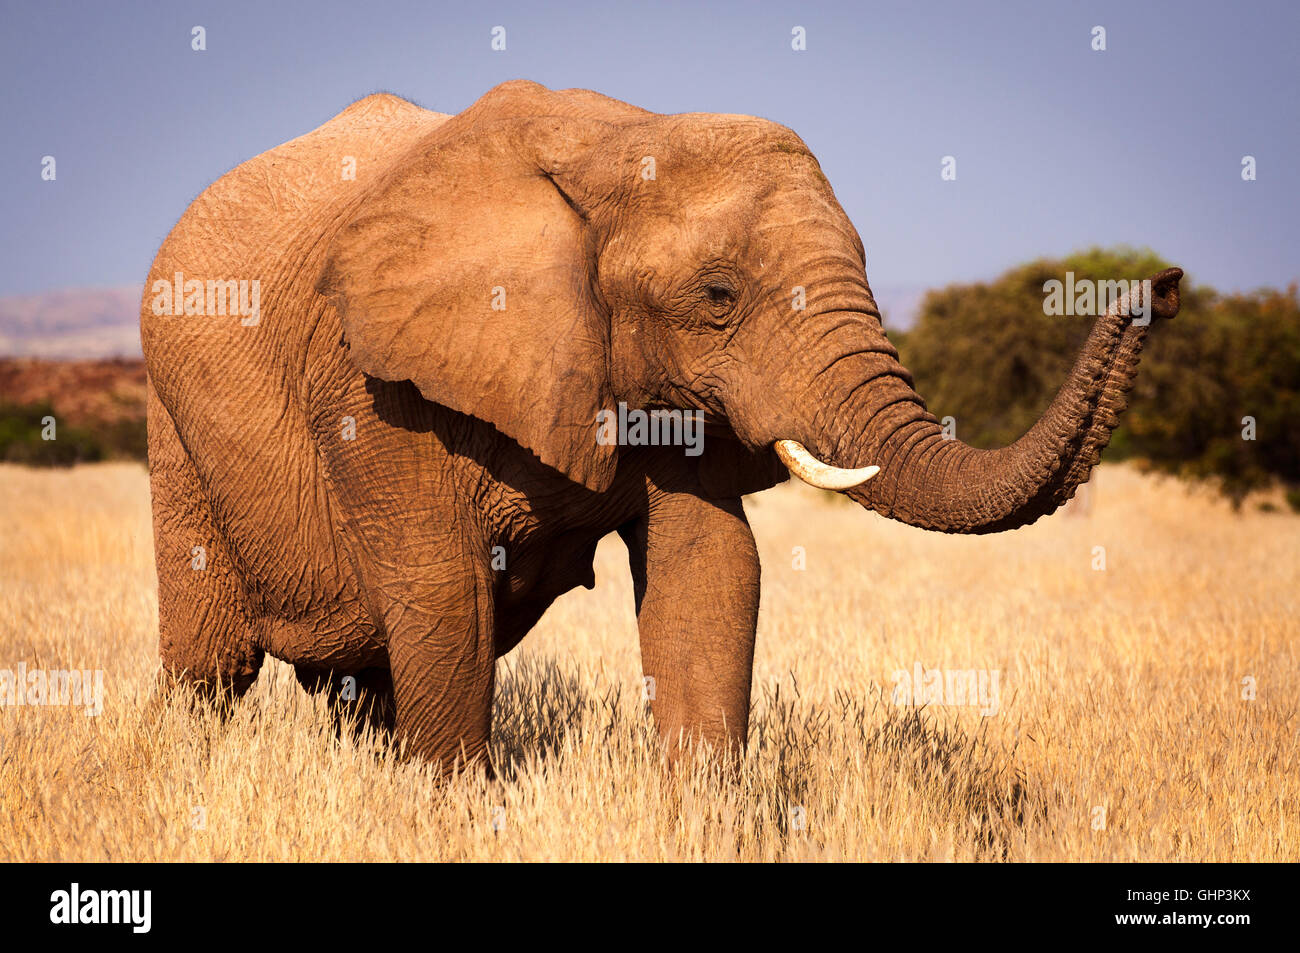 Elephant in the savannah, in Namibia, Africa, concept for traveling in Africa and Safari - Stock Image